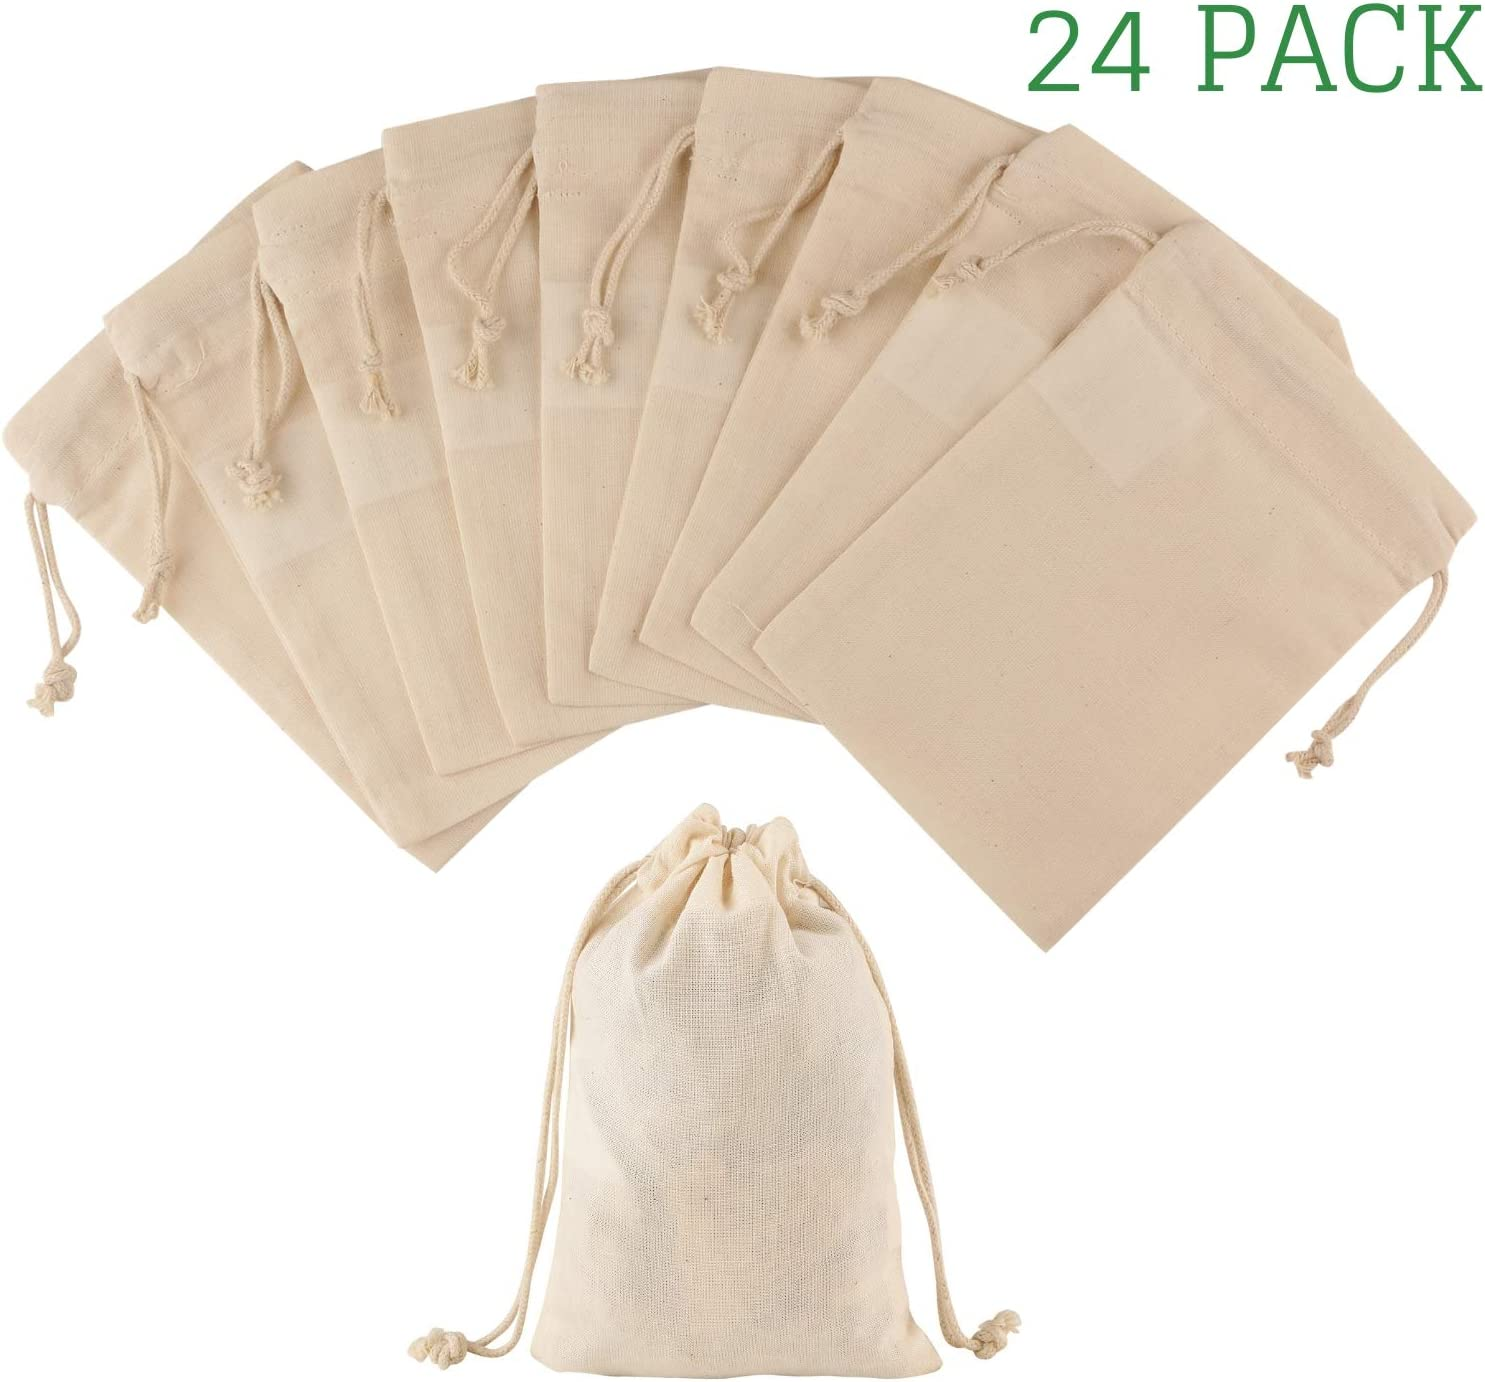 Greenmile 24 Pack Organic Cotton Muslin Bags | 4x6"